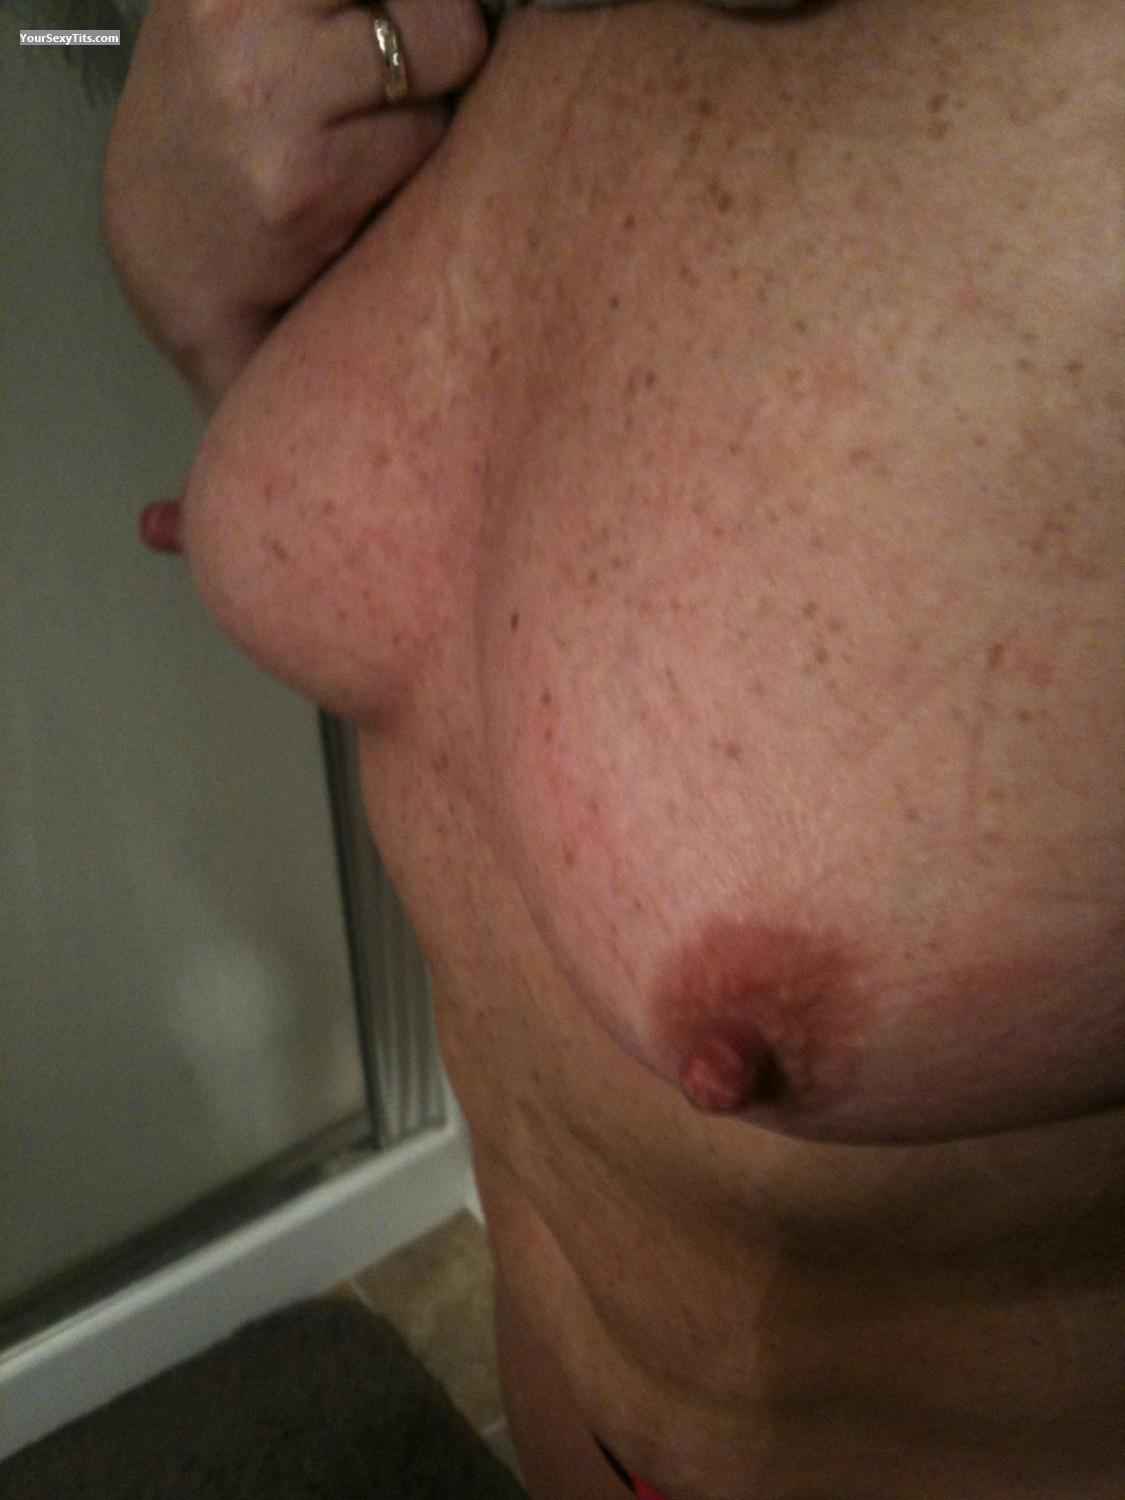 Tit Flash: Small Tits By IPhone - Nips from United States